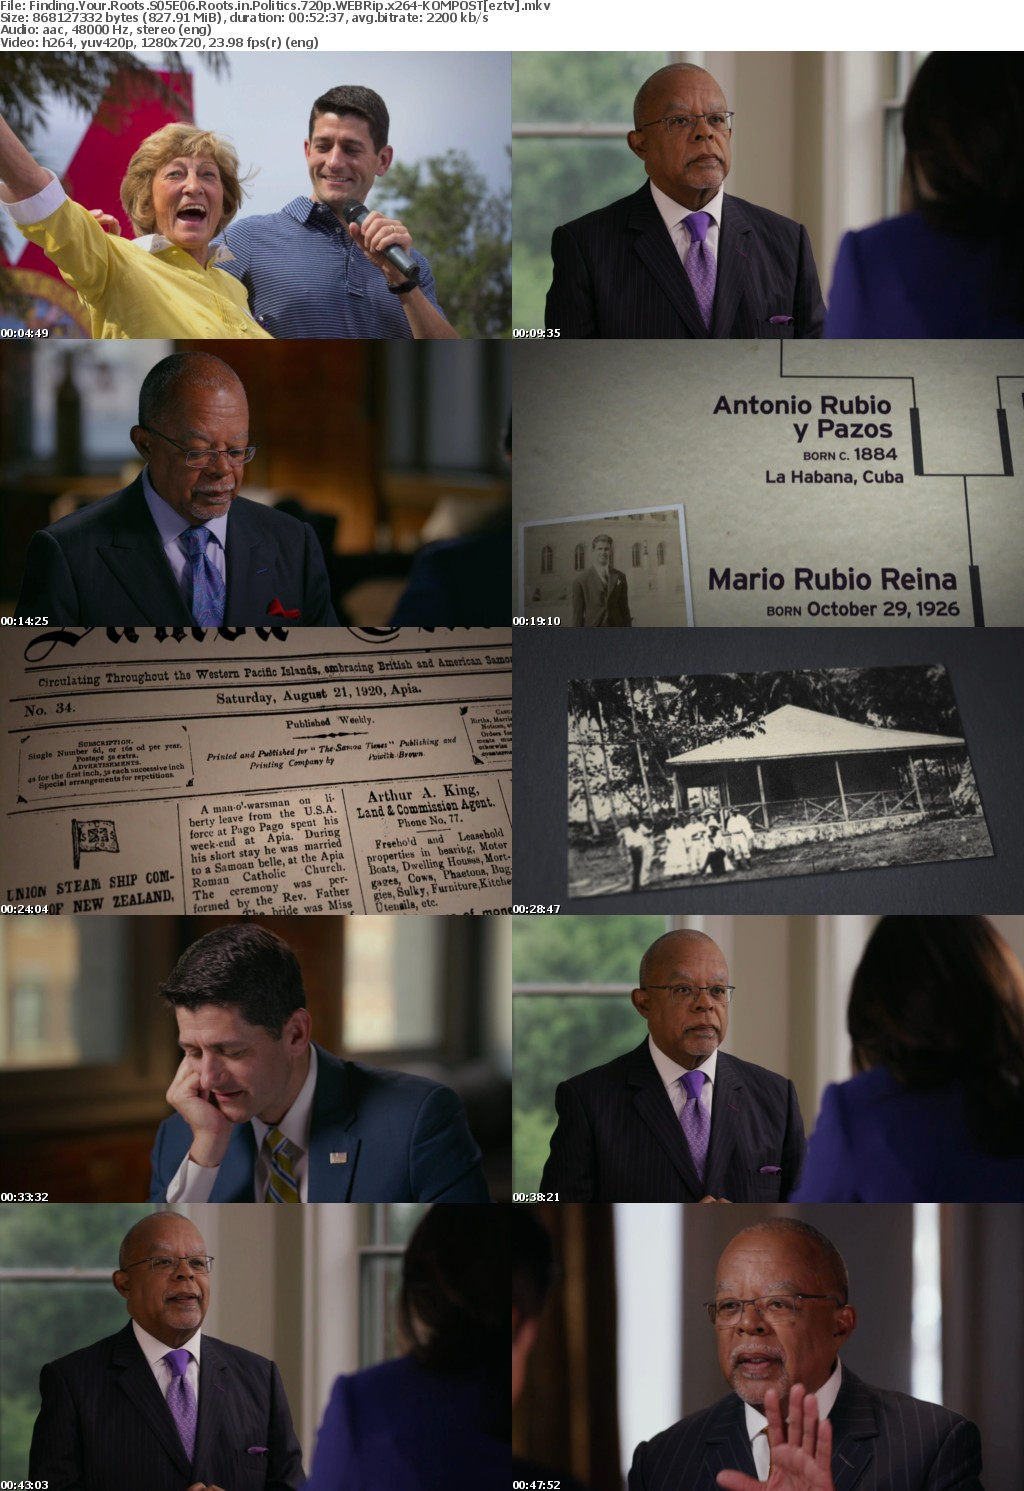 Finding Your Roots S05E06 Roots in Politics 720p WEBRip x264-KOMPOST